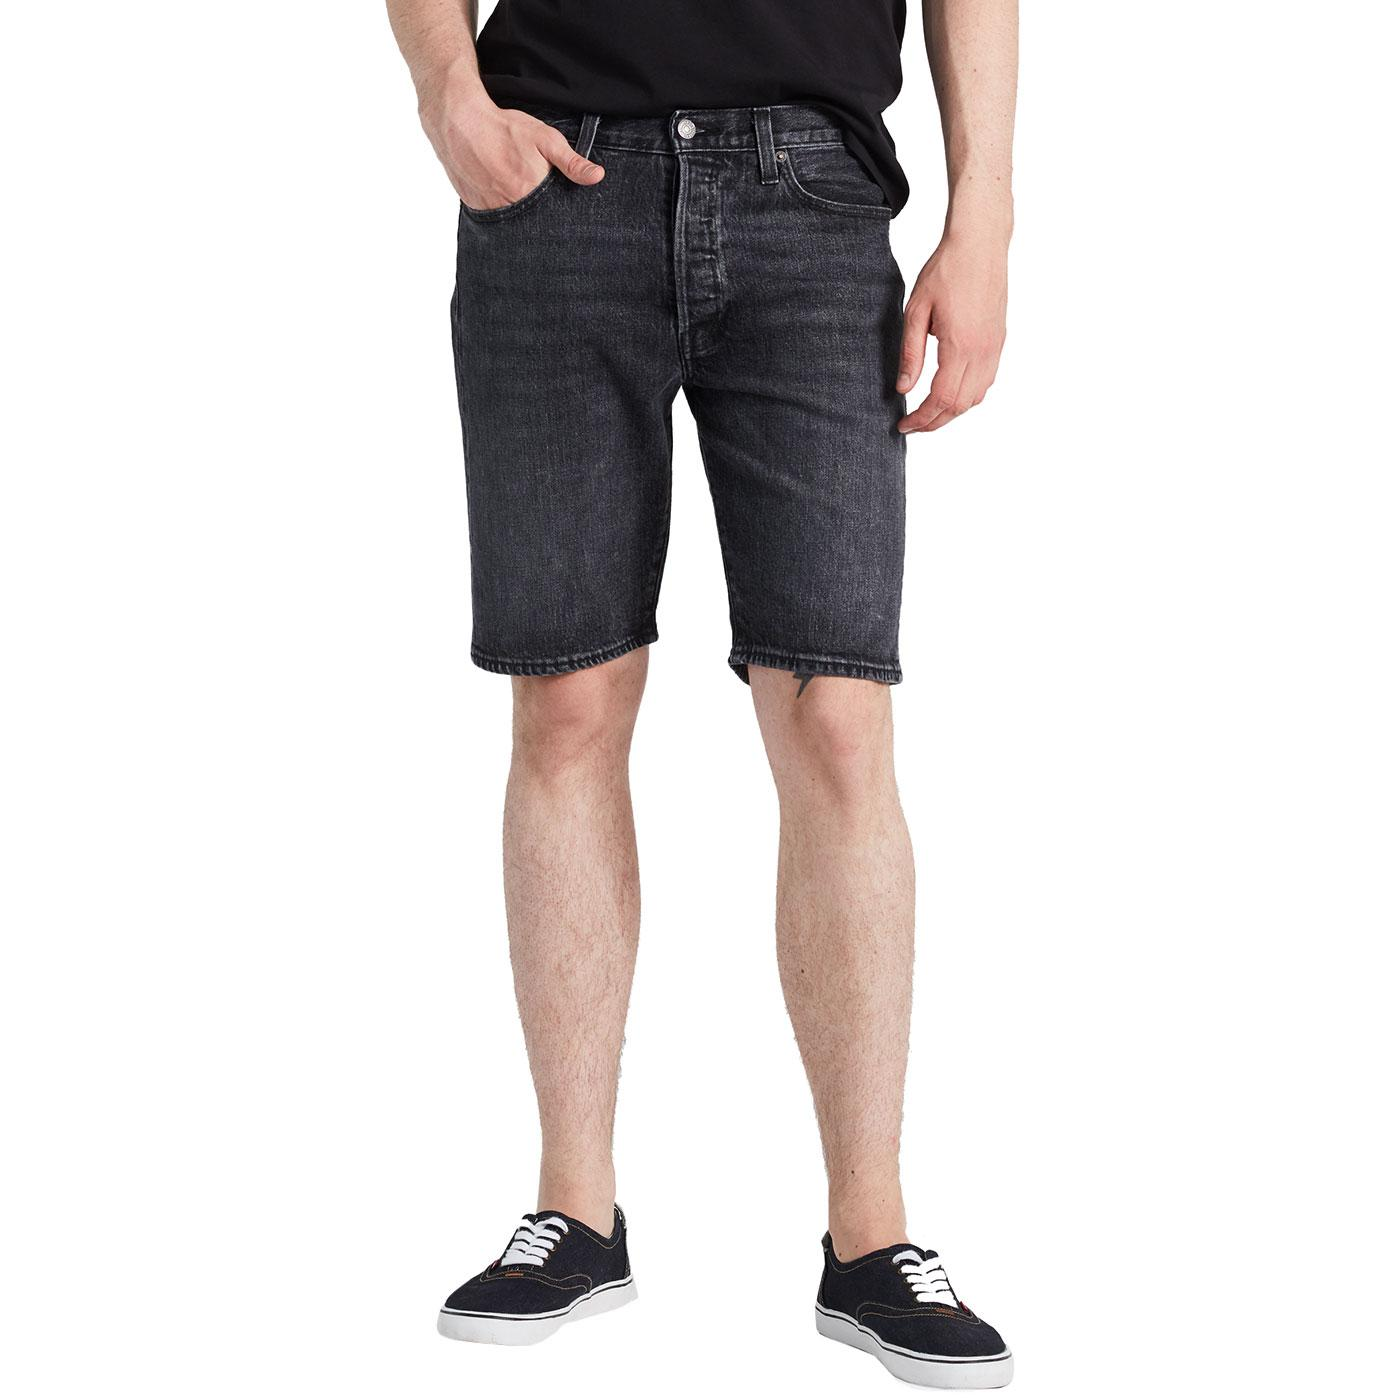 LEVI'S 501 Men's Retro Denim Hemmed Shorts (Black)